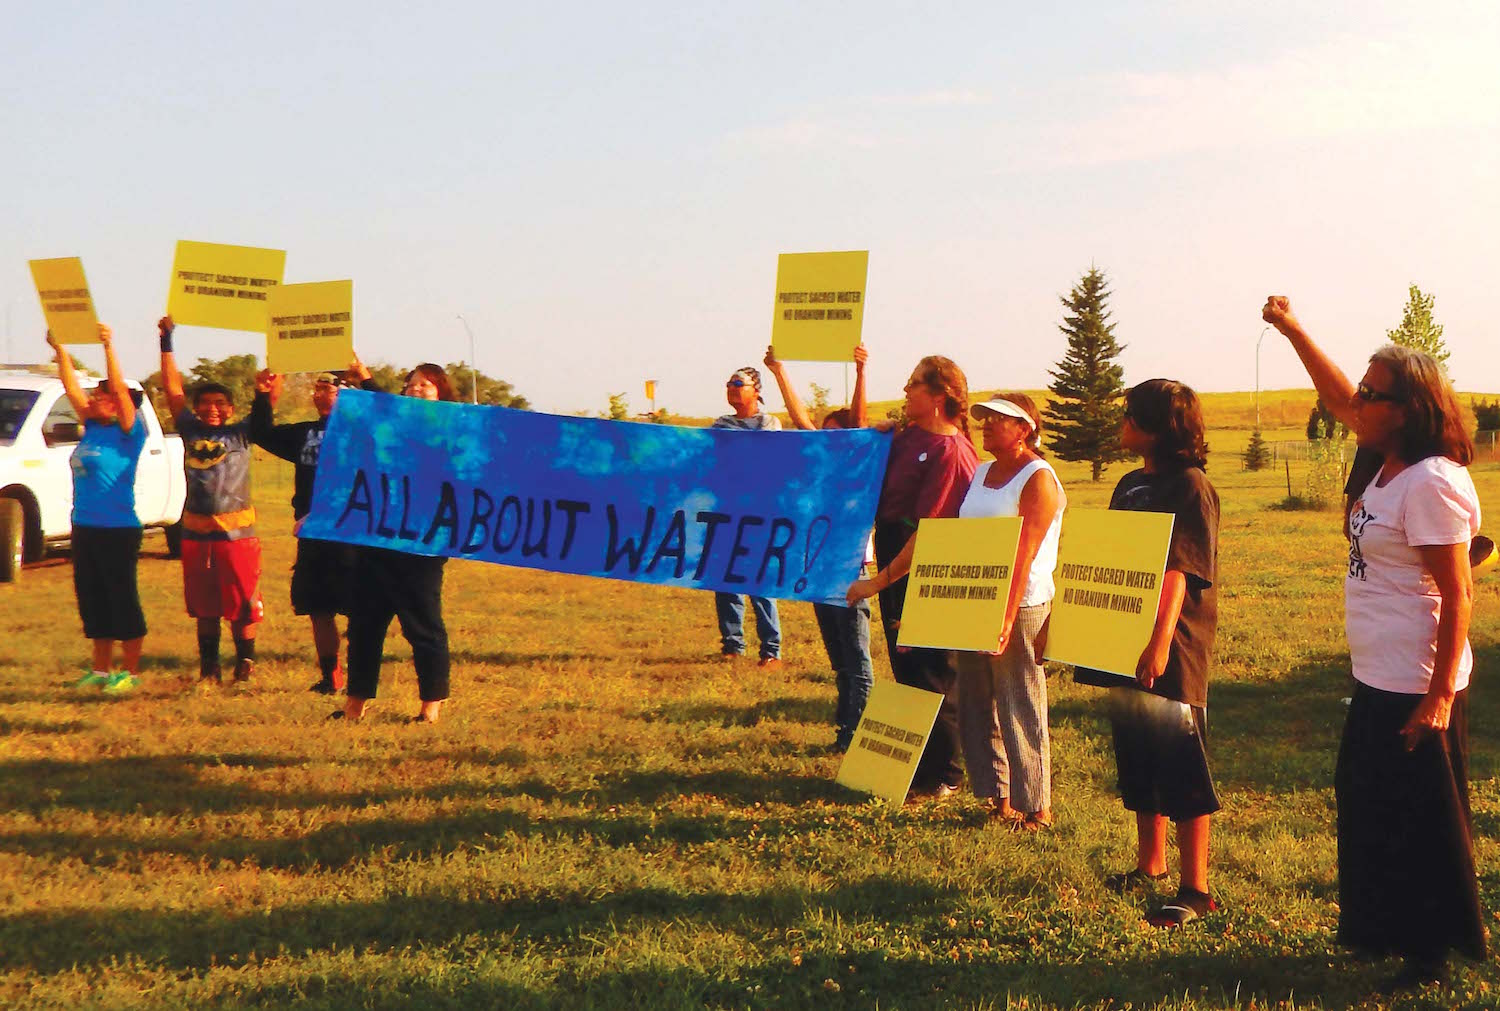 Native Sun News: Oglala Sioux activist challenges uranium mine